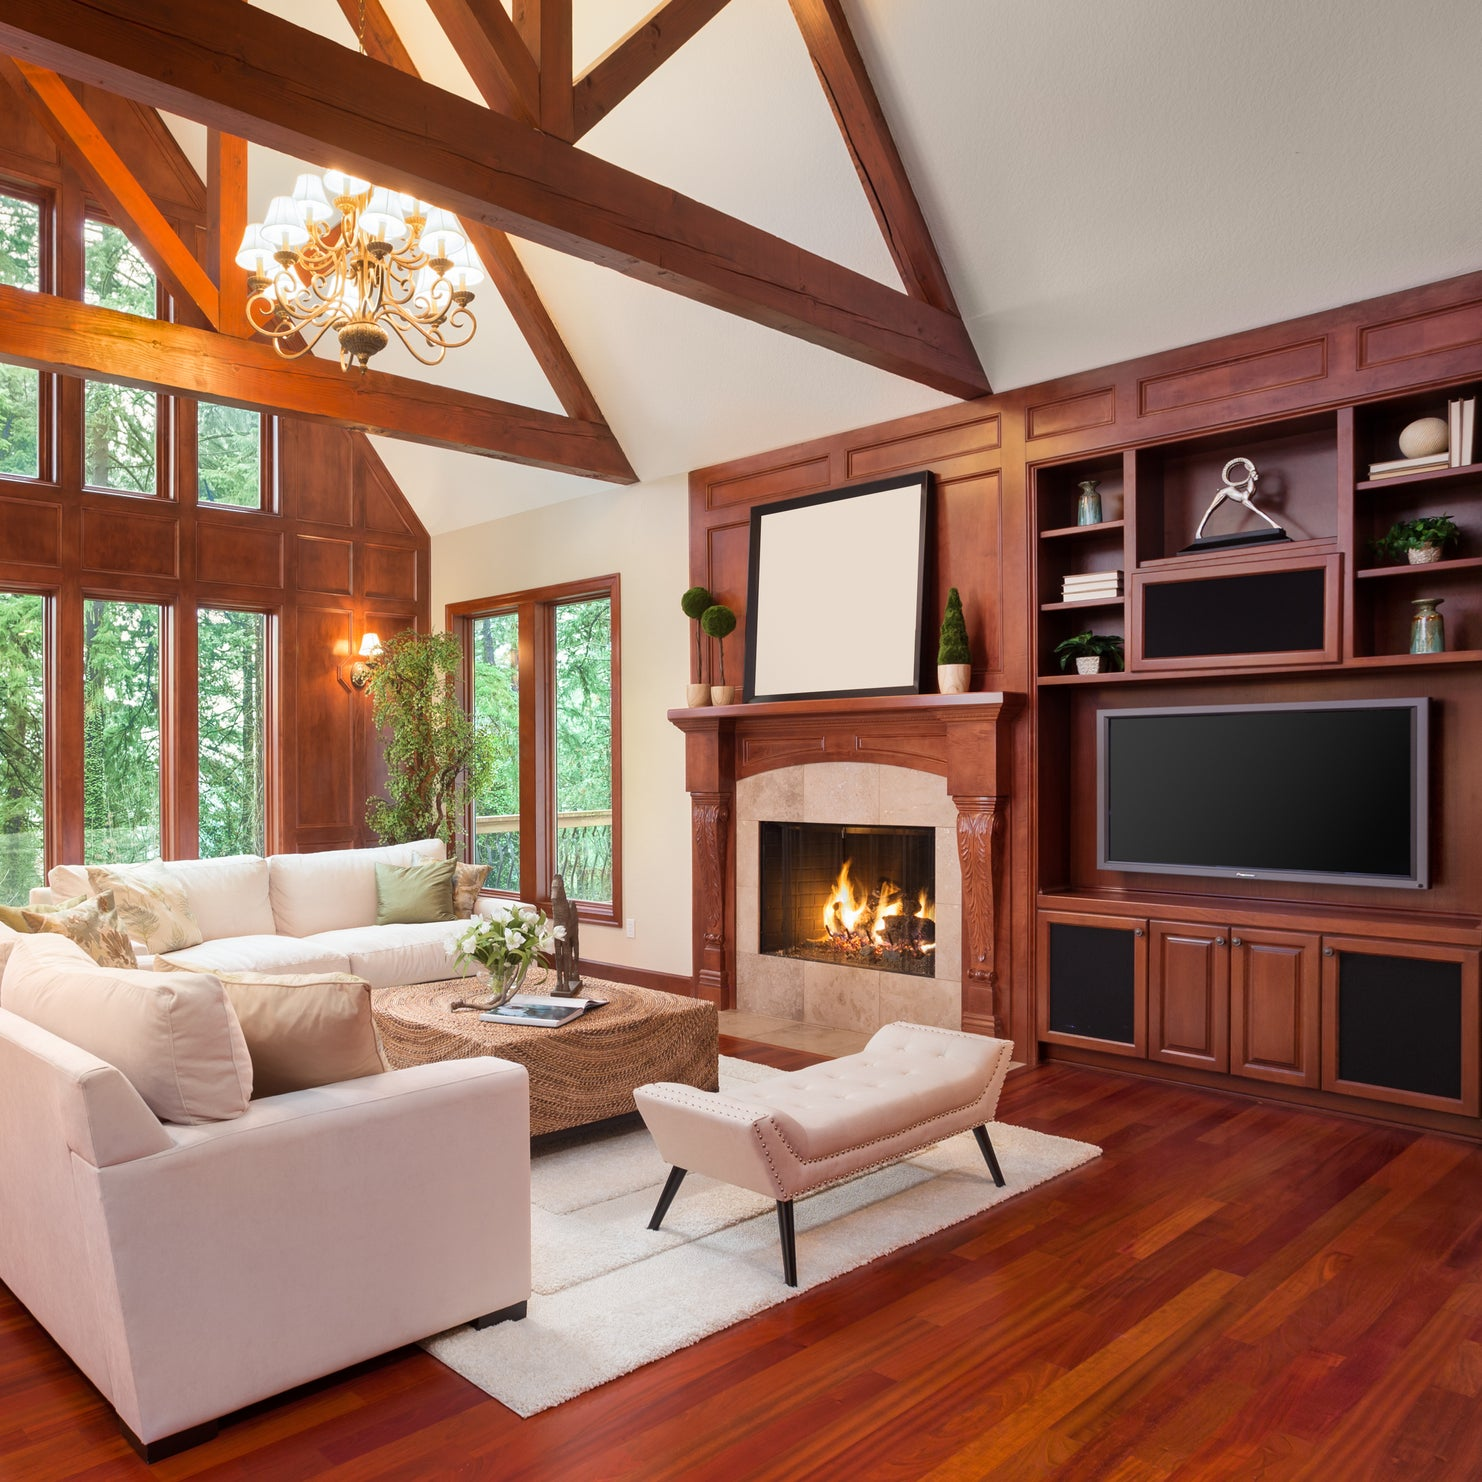 Vaulted Ceiling Pros Cons Millionacres